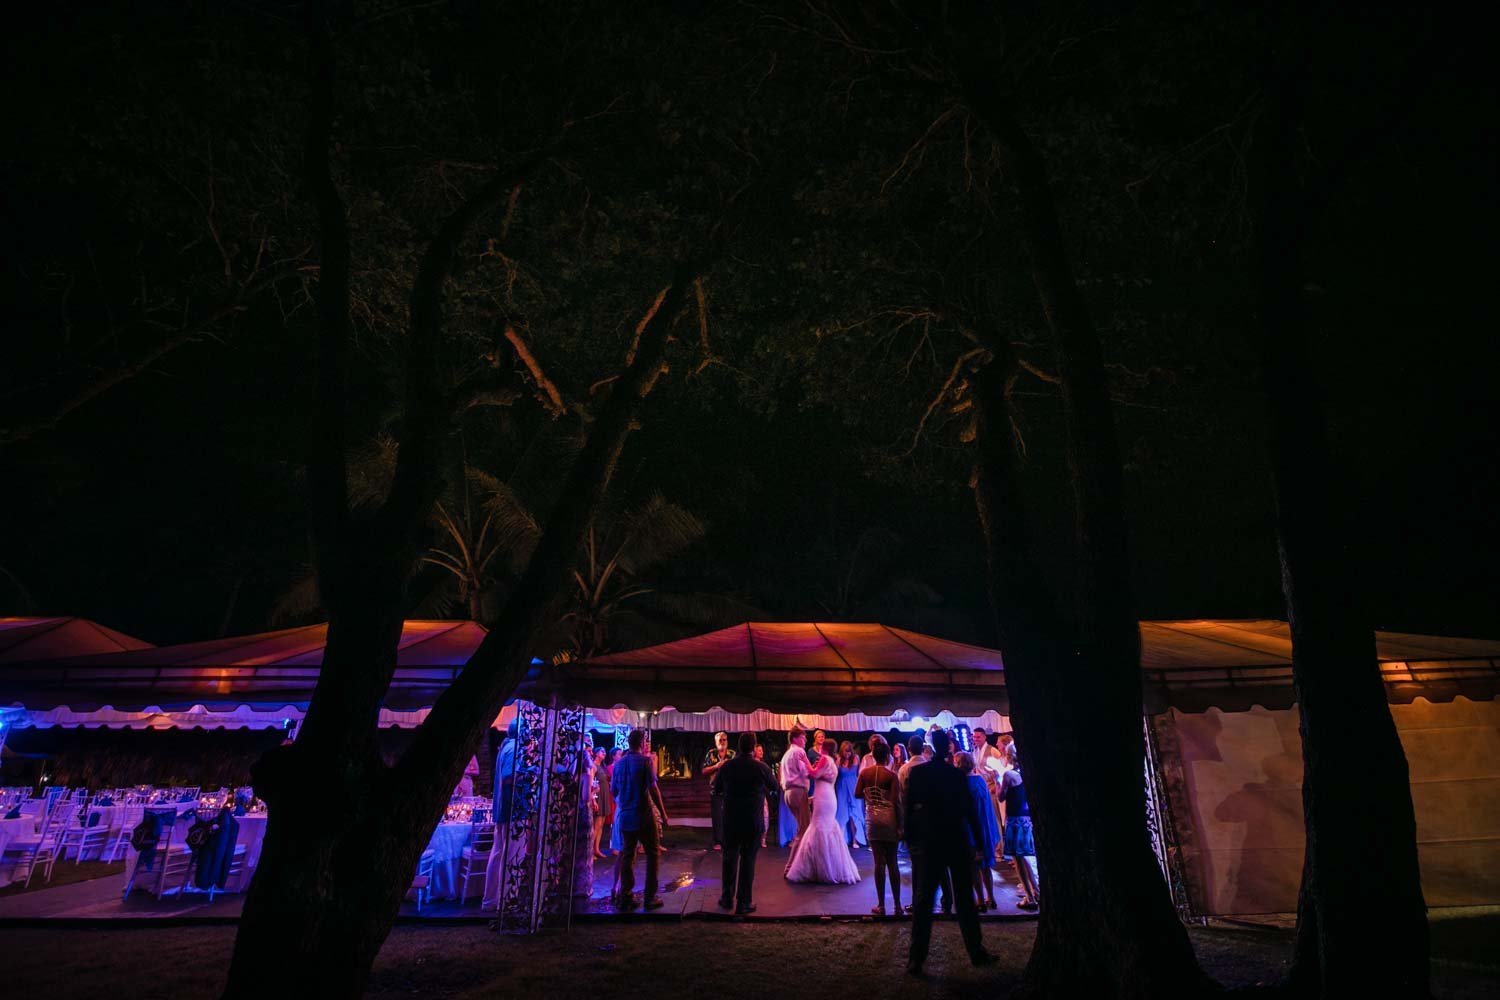 Father daughter dance under tent at Hideaway Beach Resort in Cabarete Dominican Republic